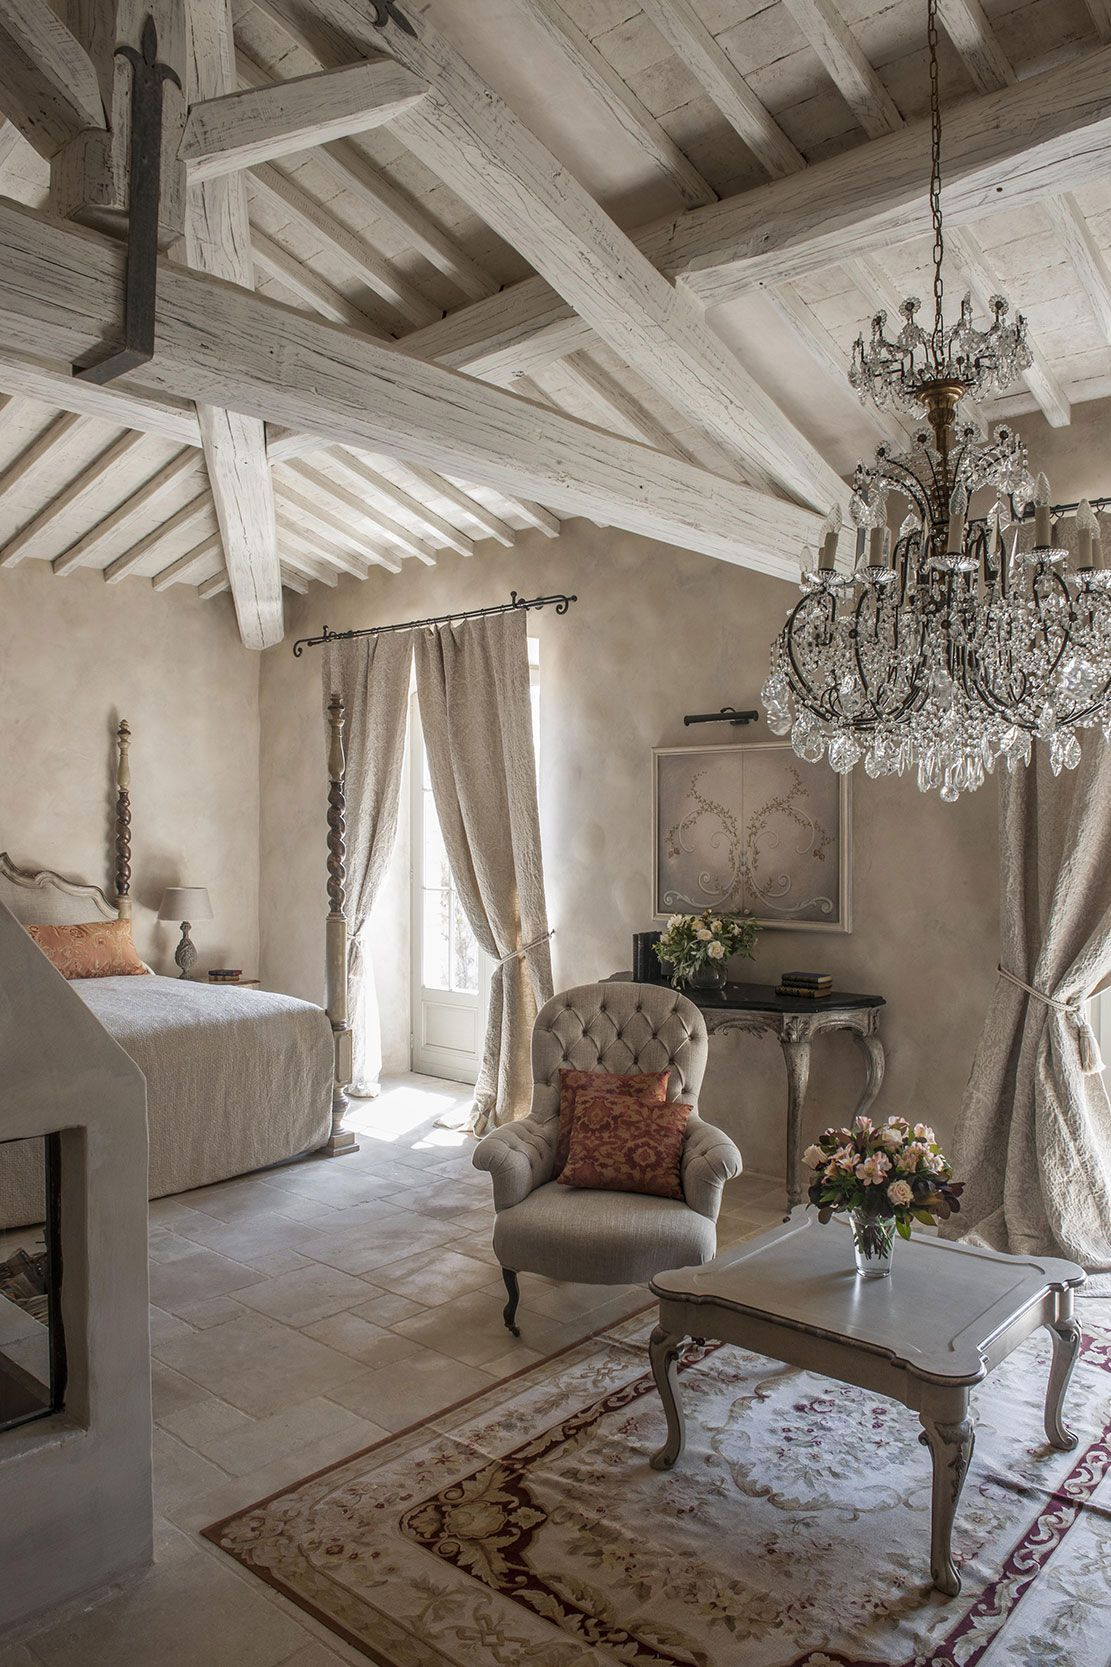 10 tips for creating the most relaxing french country bedroom ever home decor pinterest. Black Bedroom Furniture Sets. Home Design Ideas